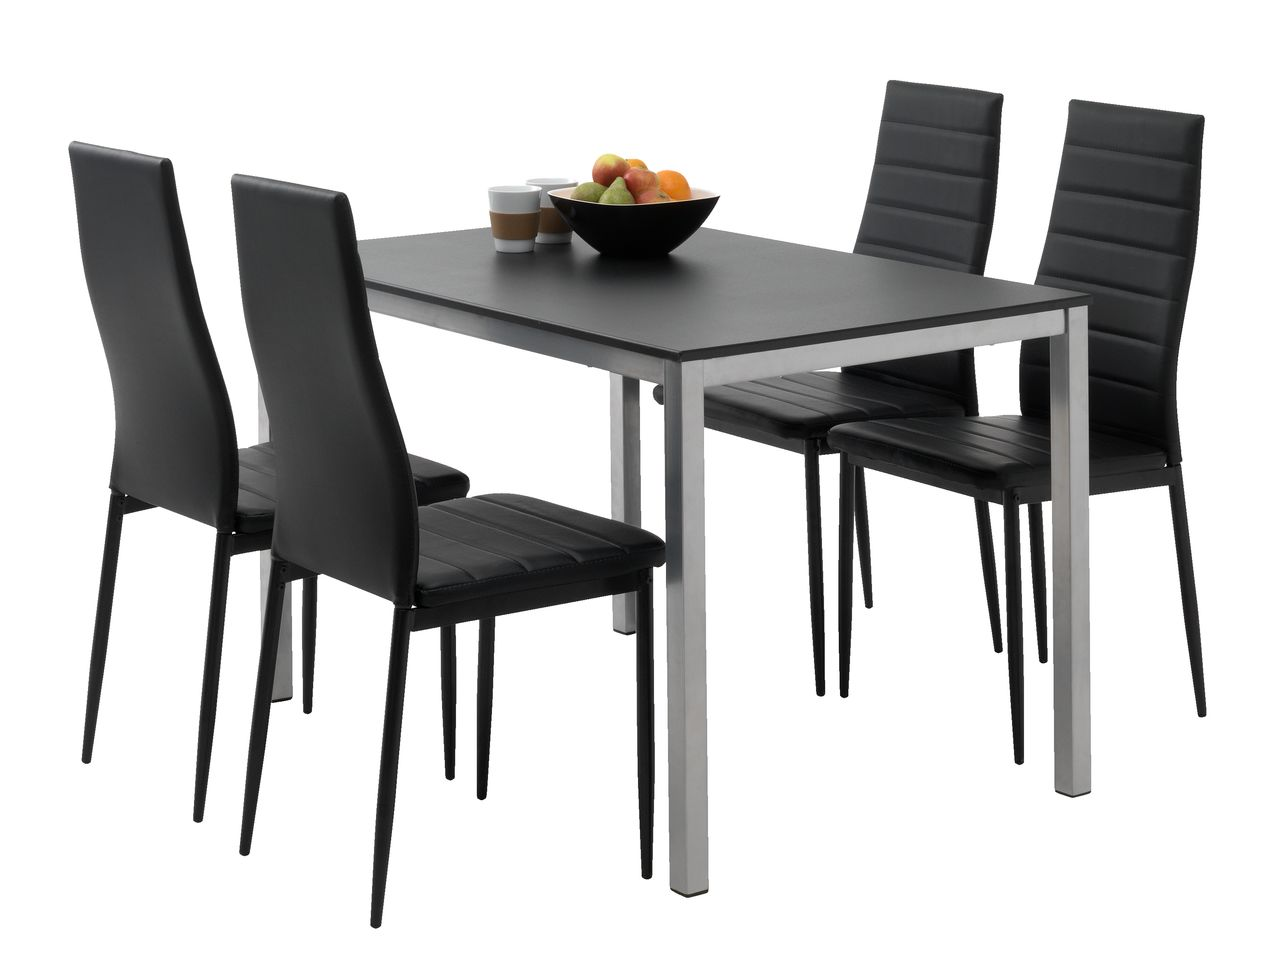 jysk dining room chair covers small modern kitchen table and chairs gelsted l117 43 4 toreby black